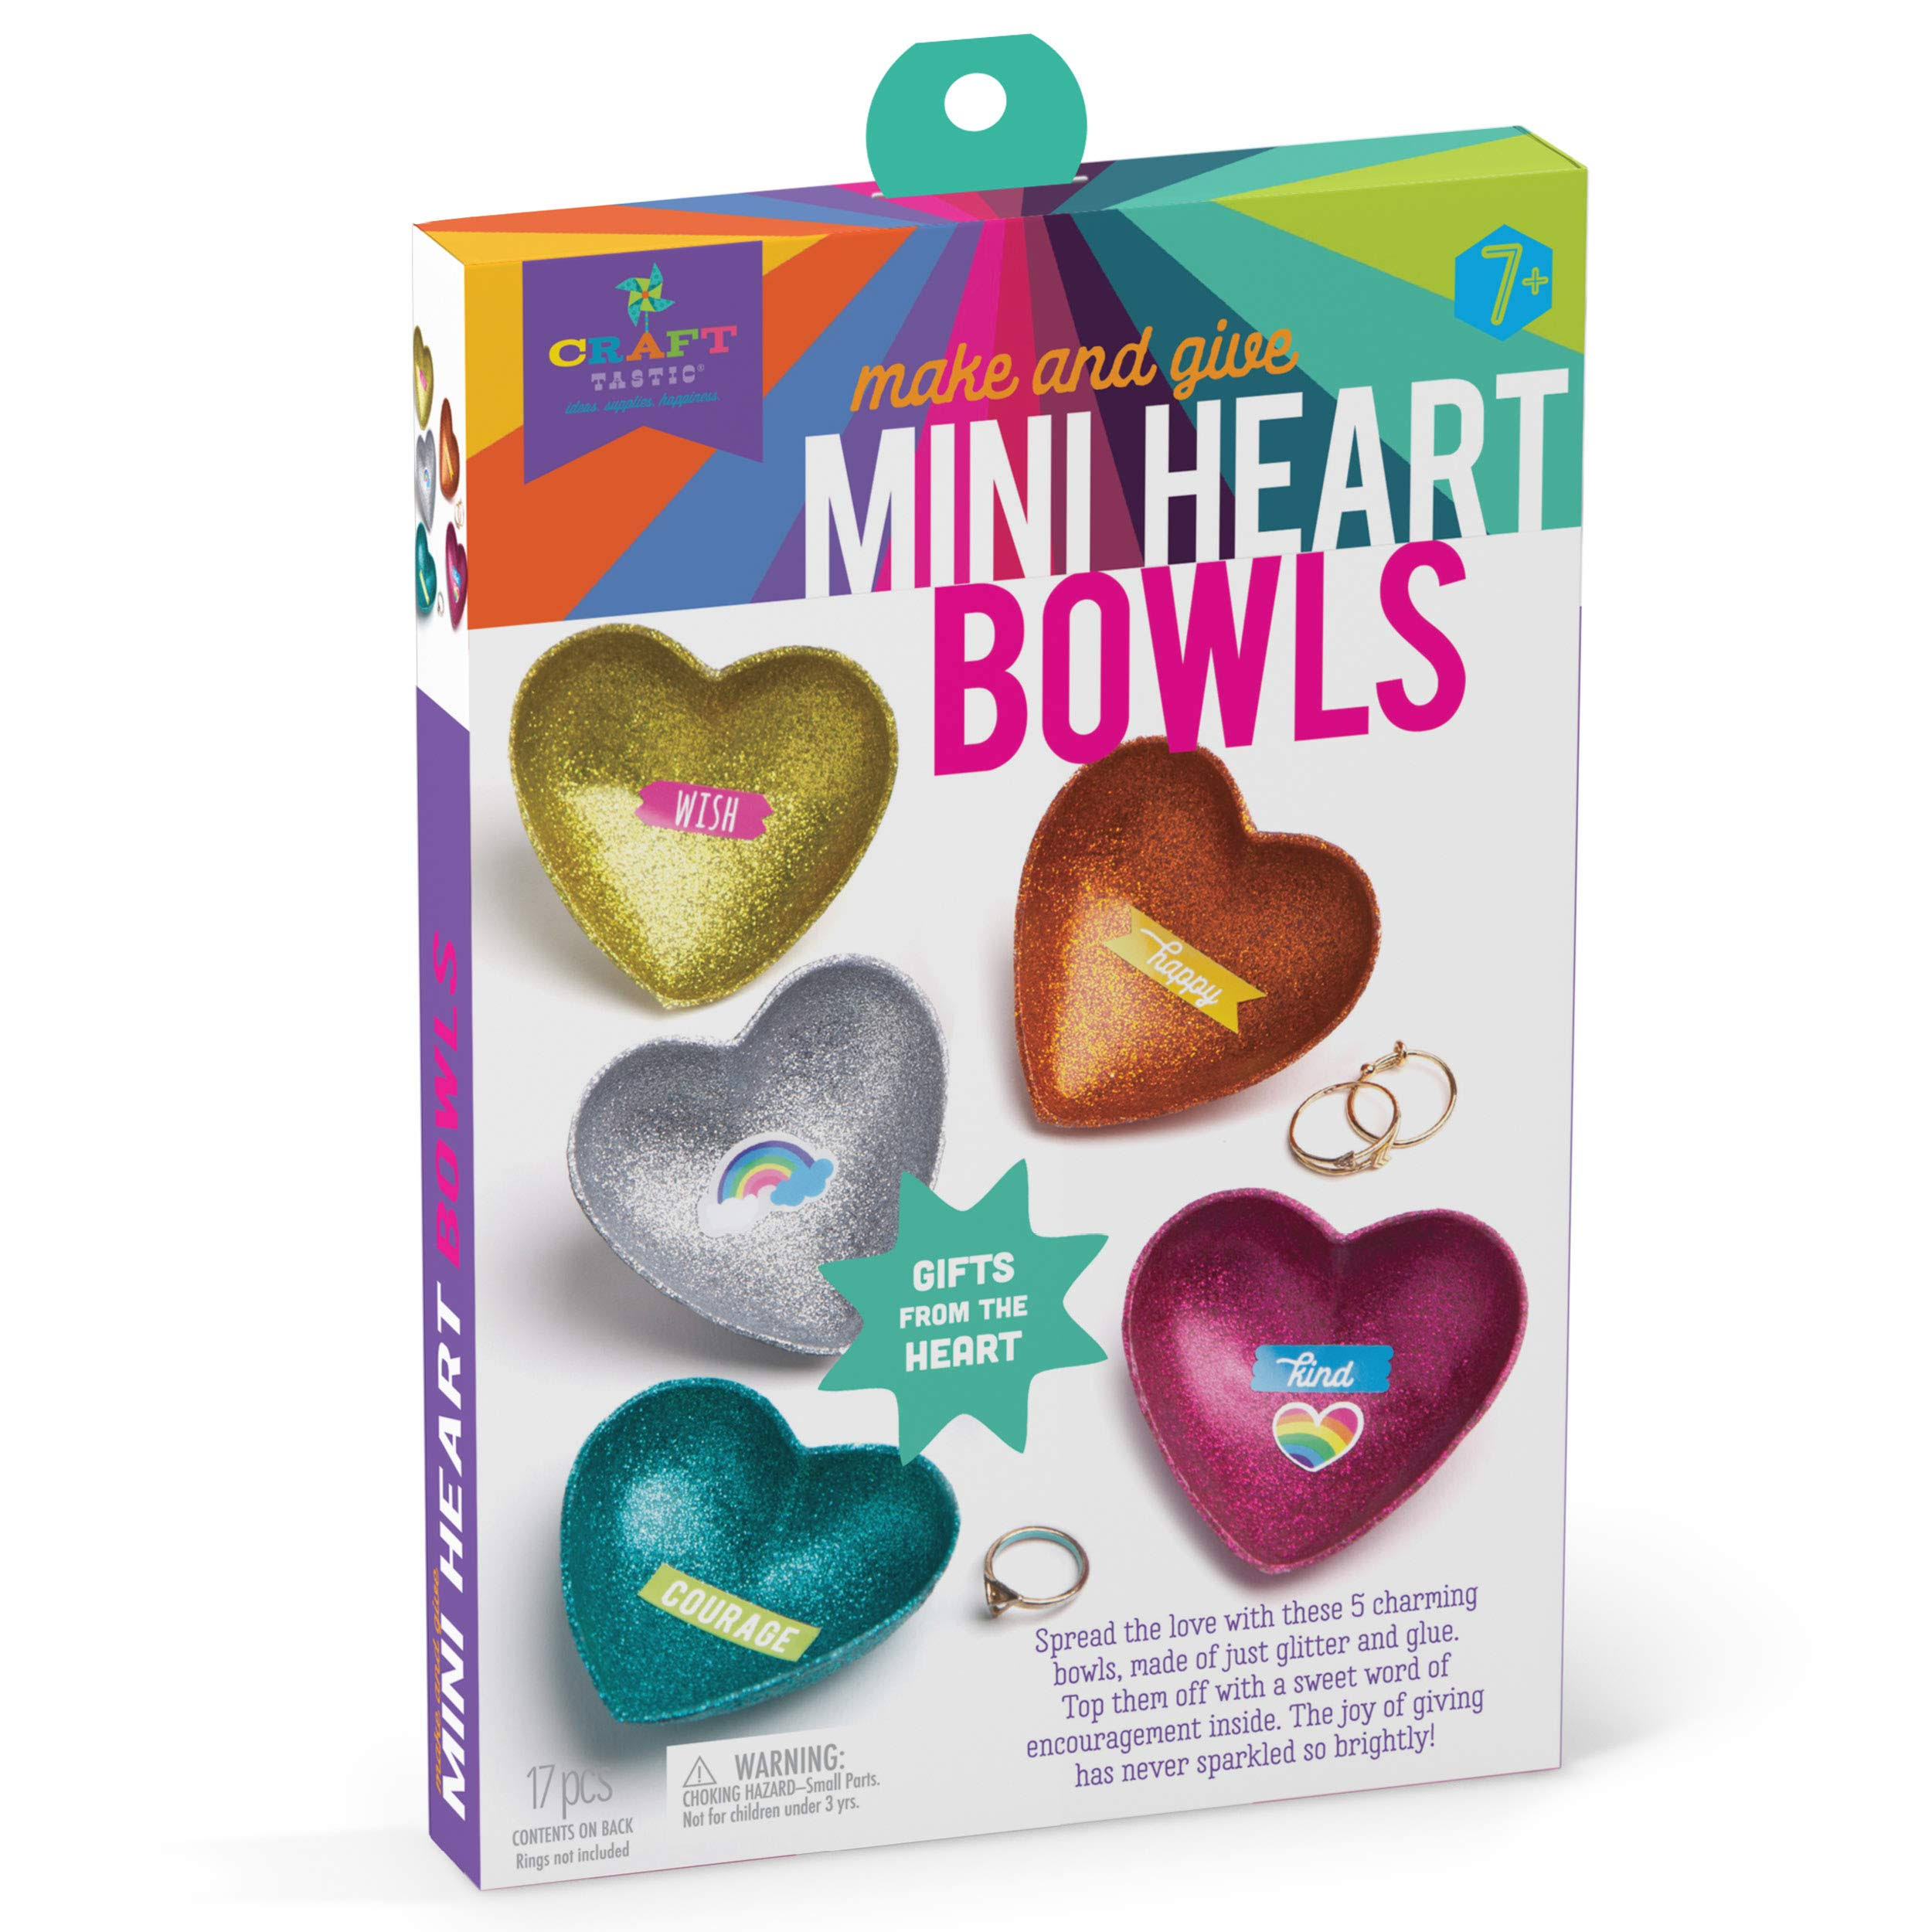 Craft-tastic – Mini Heart Bowls – Craft Kit Makes 5 Heart-Shaped Glitter Bowls to Decorate & Share